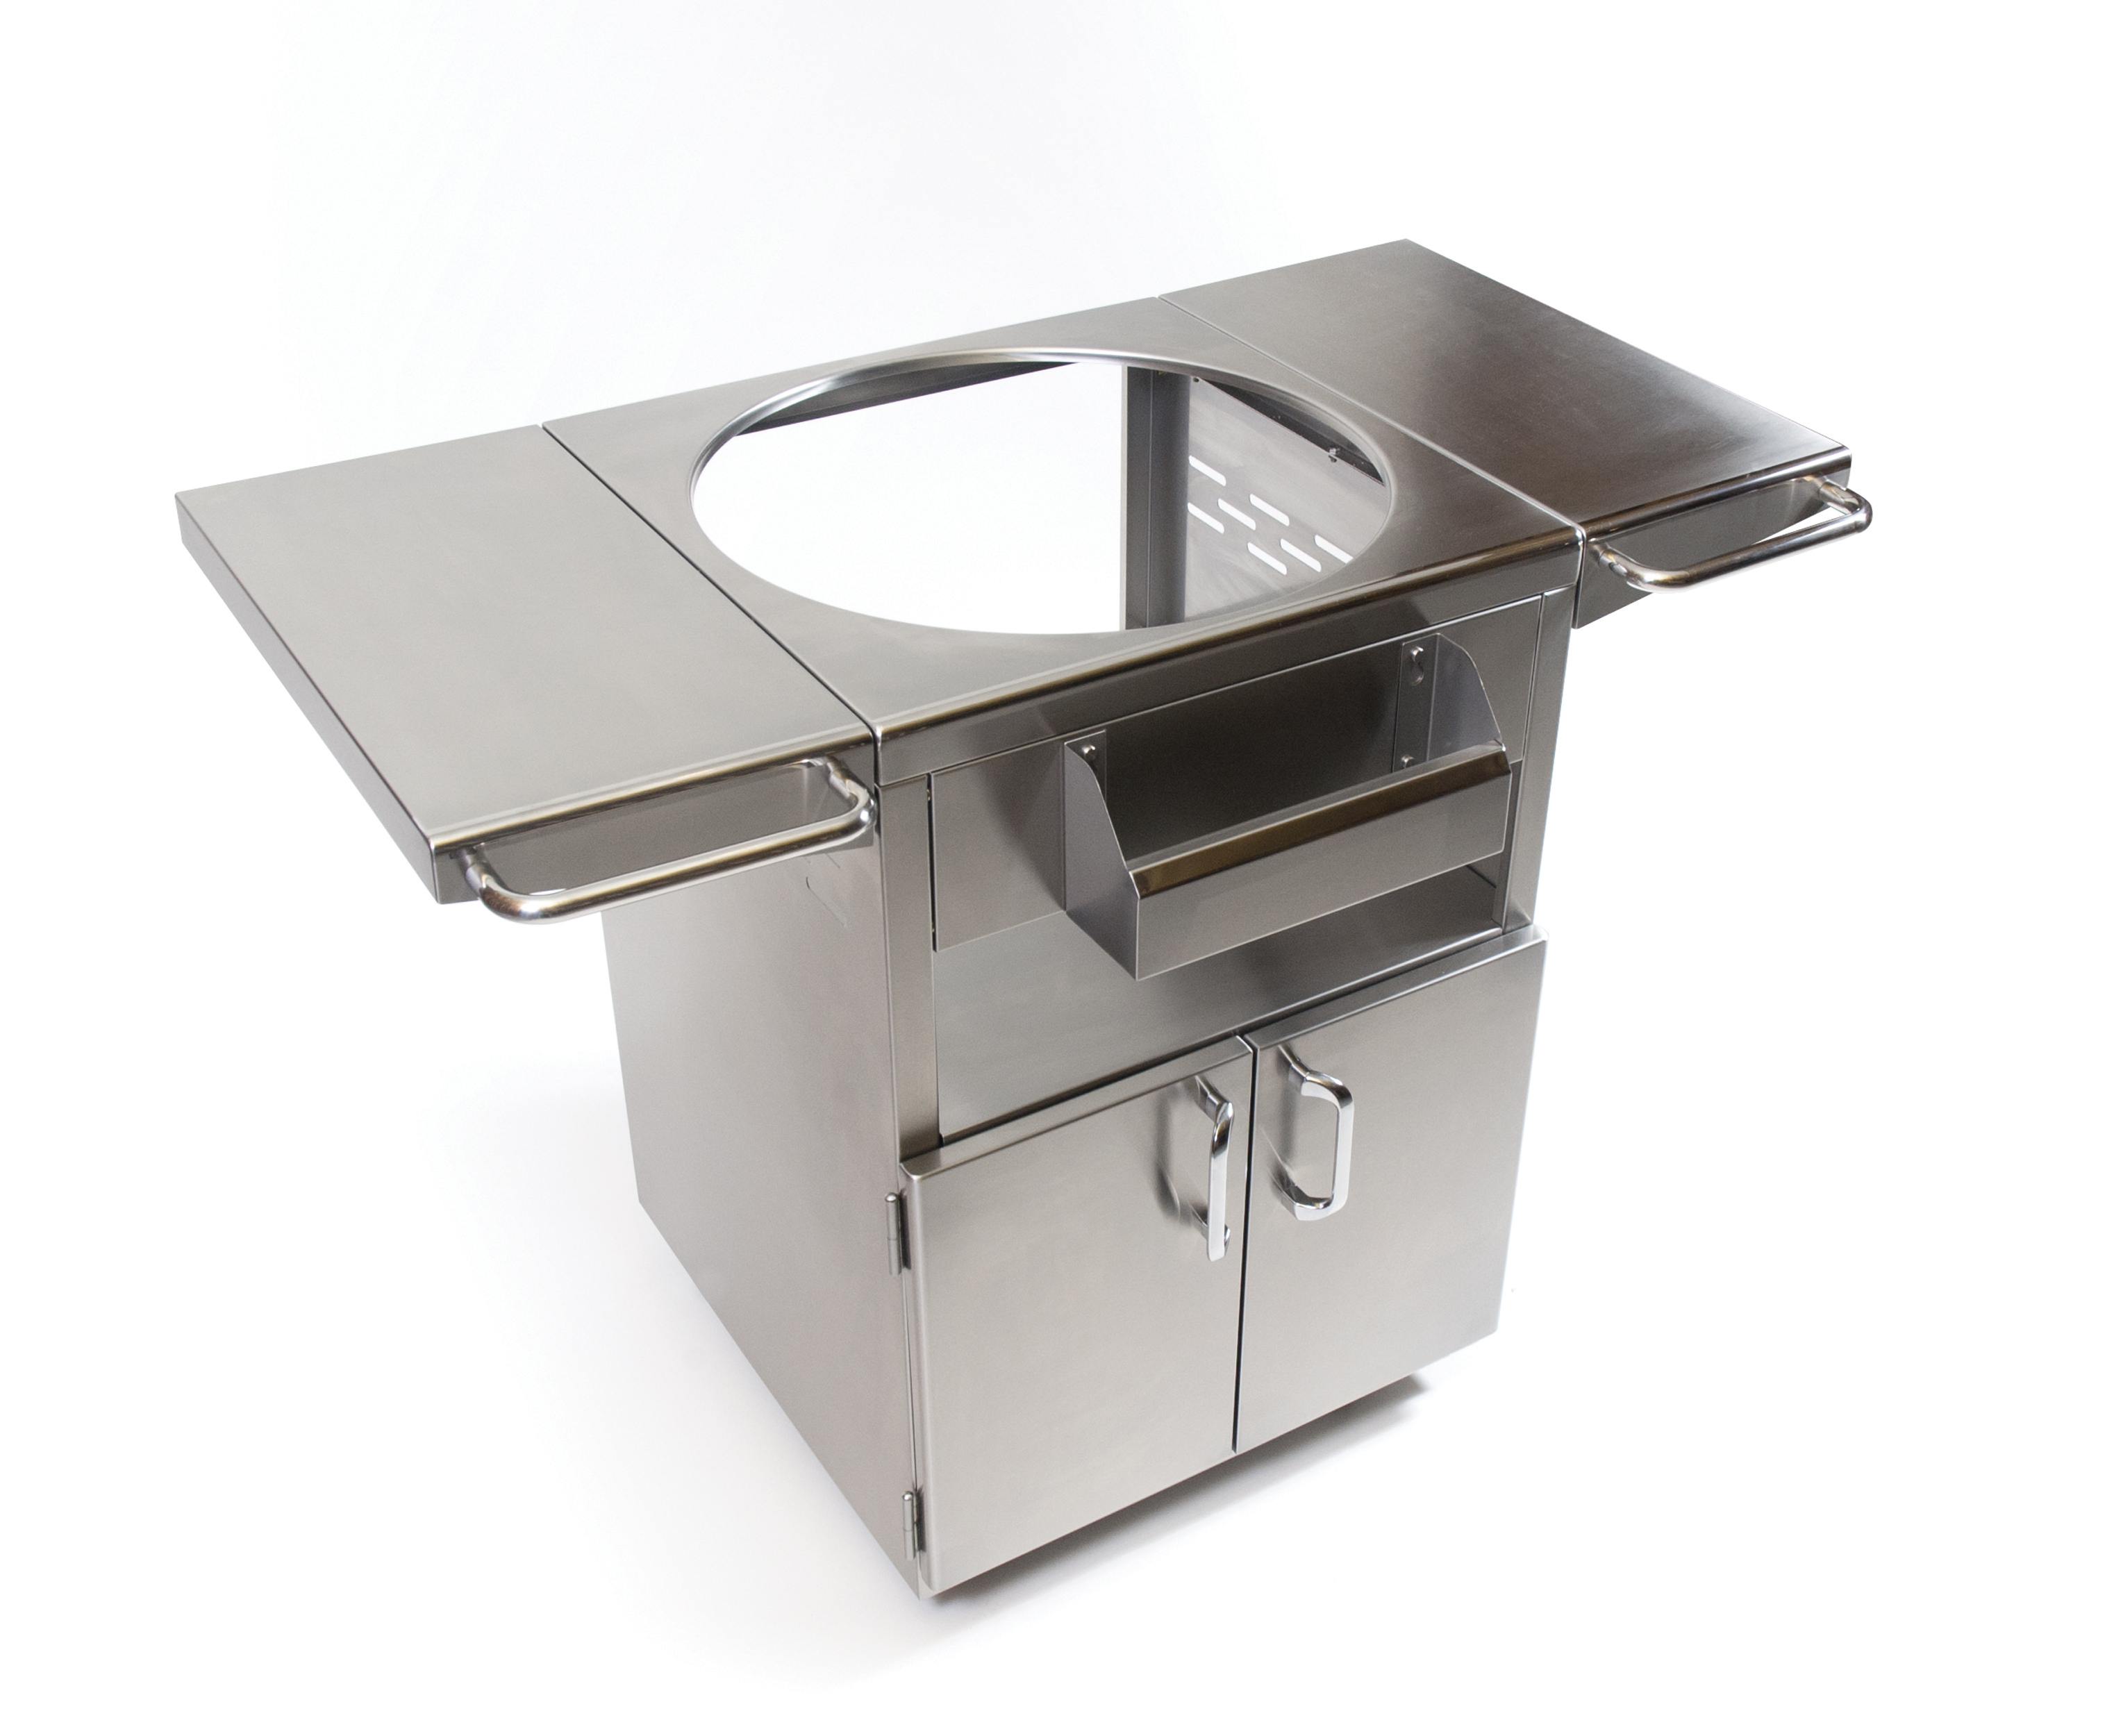 STAINLESS STEEL GRILL TABLE Fireside Outdoor Kitchens - Stainless steel table accessories